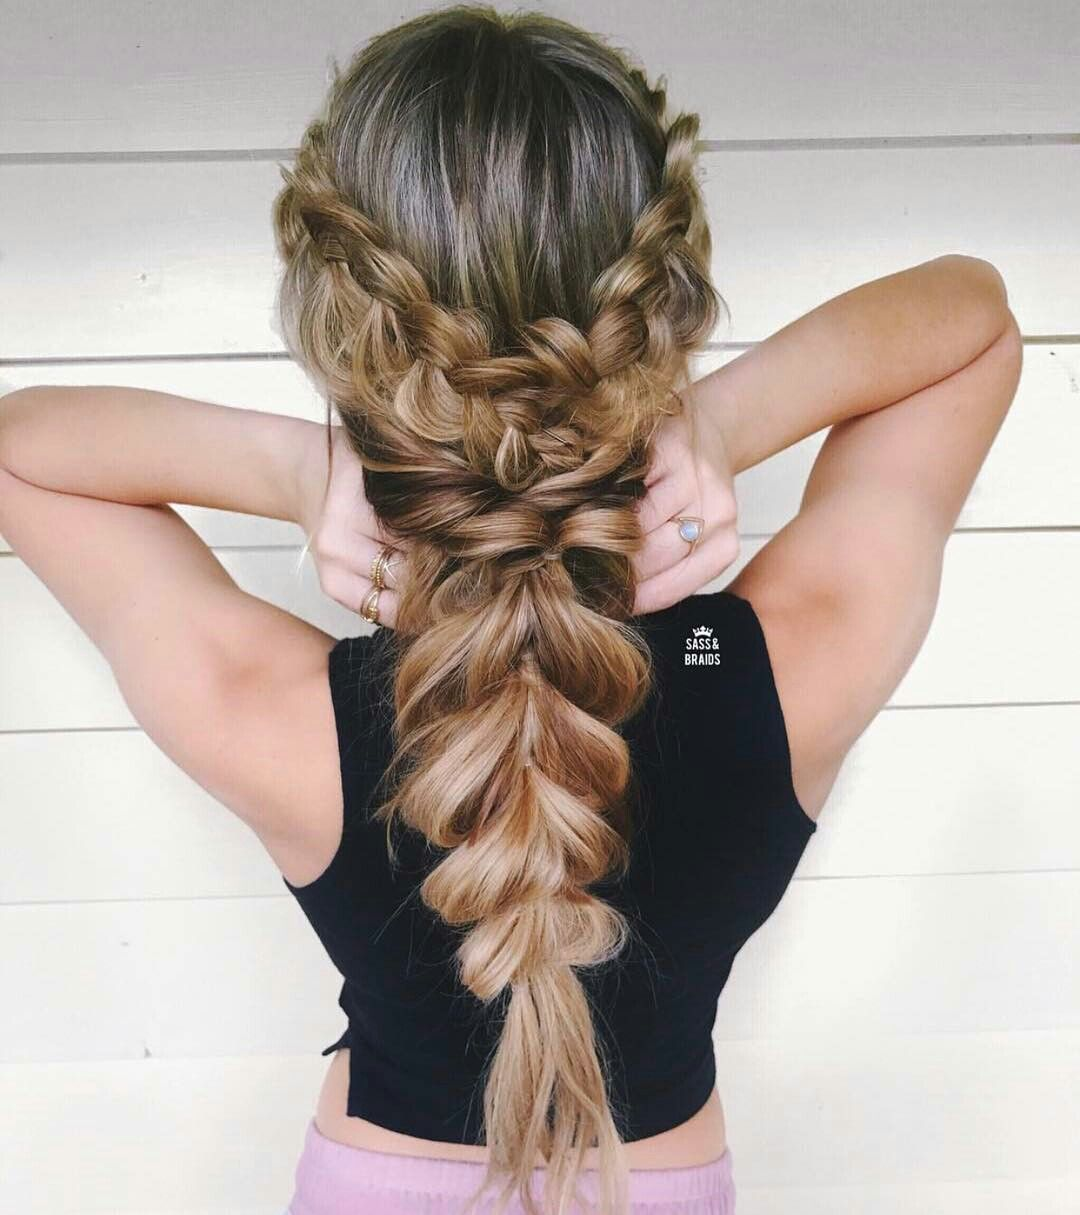 Pin by kattie outoole on hairstyles pinterest hair style